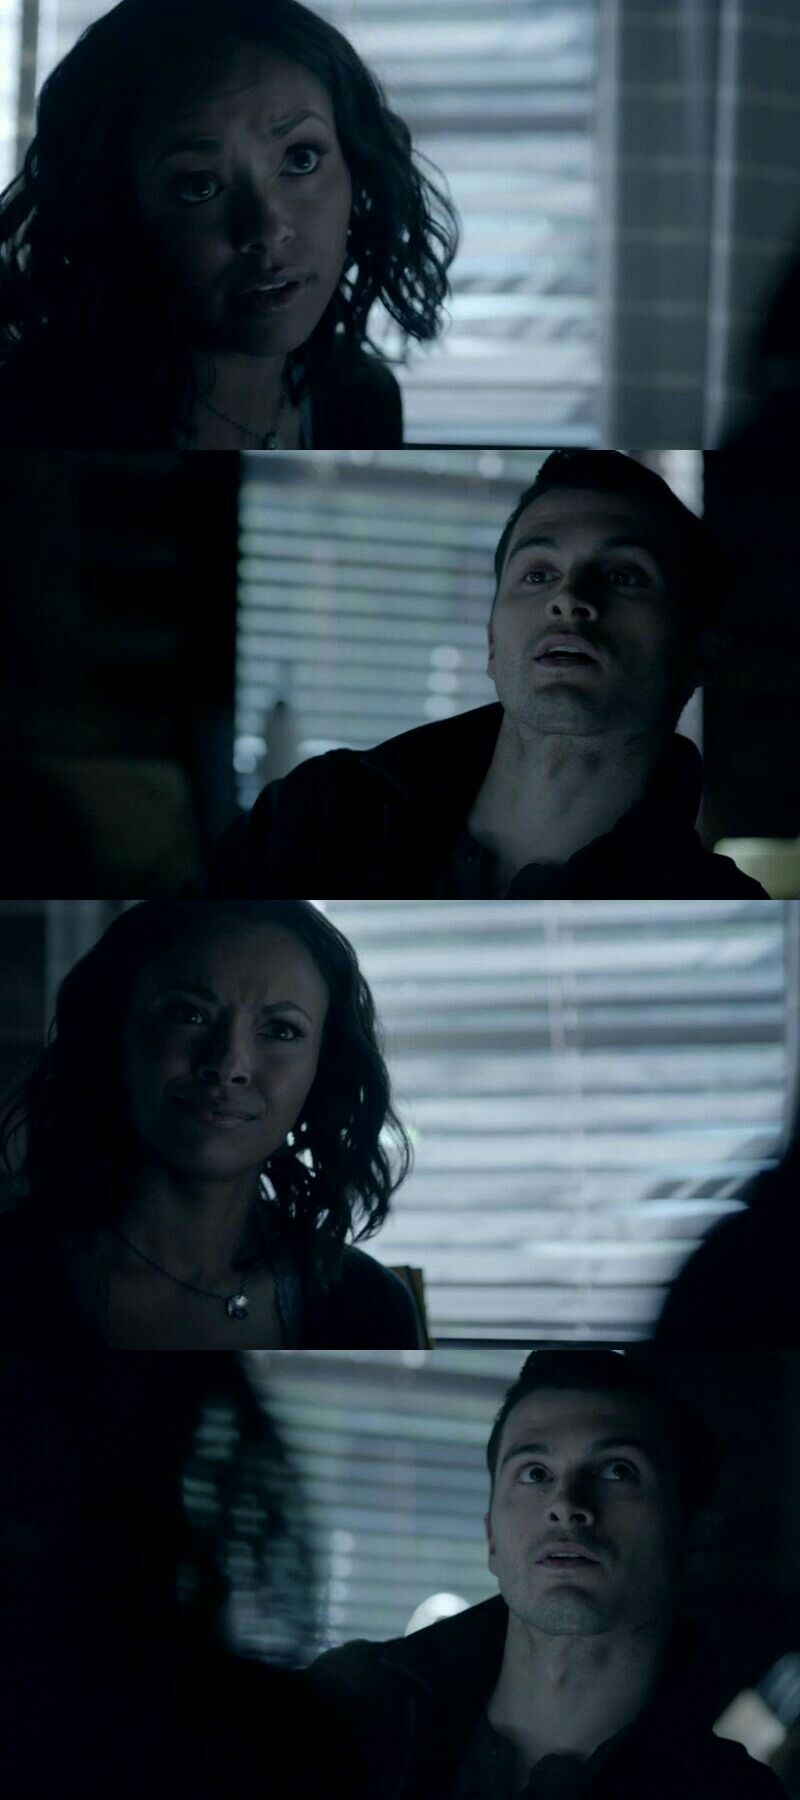 """#TVD 7x19 """"Somebody That I Used To Know"""" - Bonnie and Enzo"""